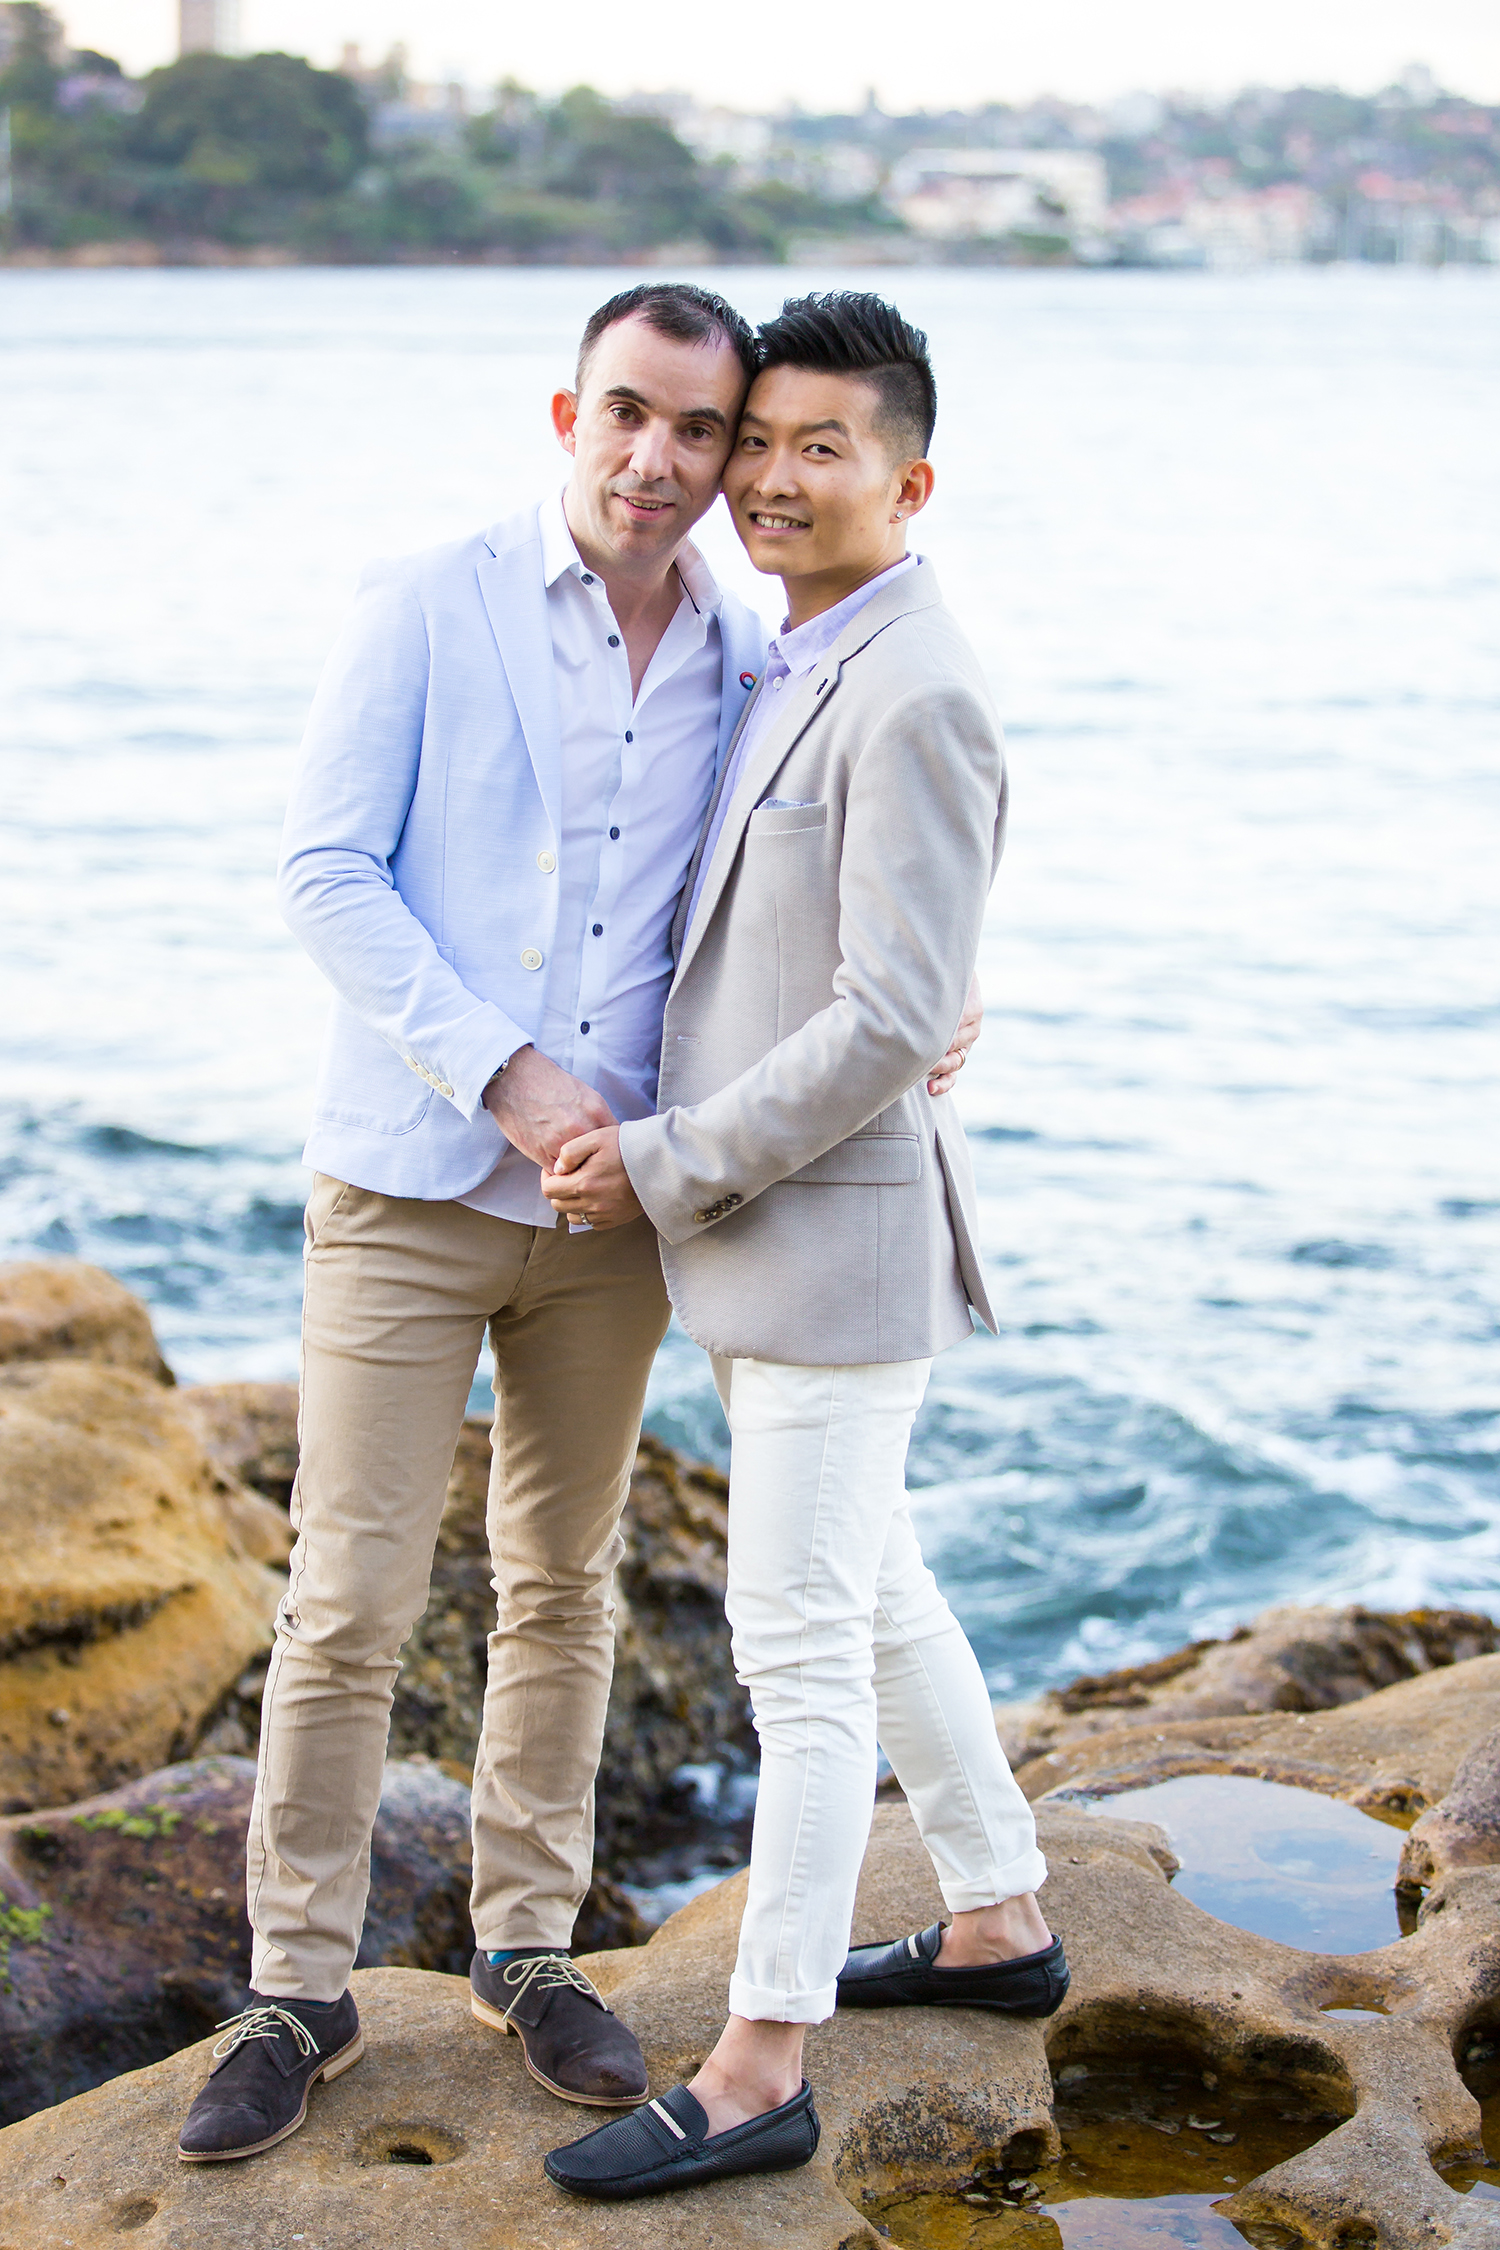 Sydney Gay Wedding Photographer - Jennifer Lam Photography (55).jpg